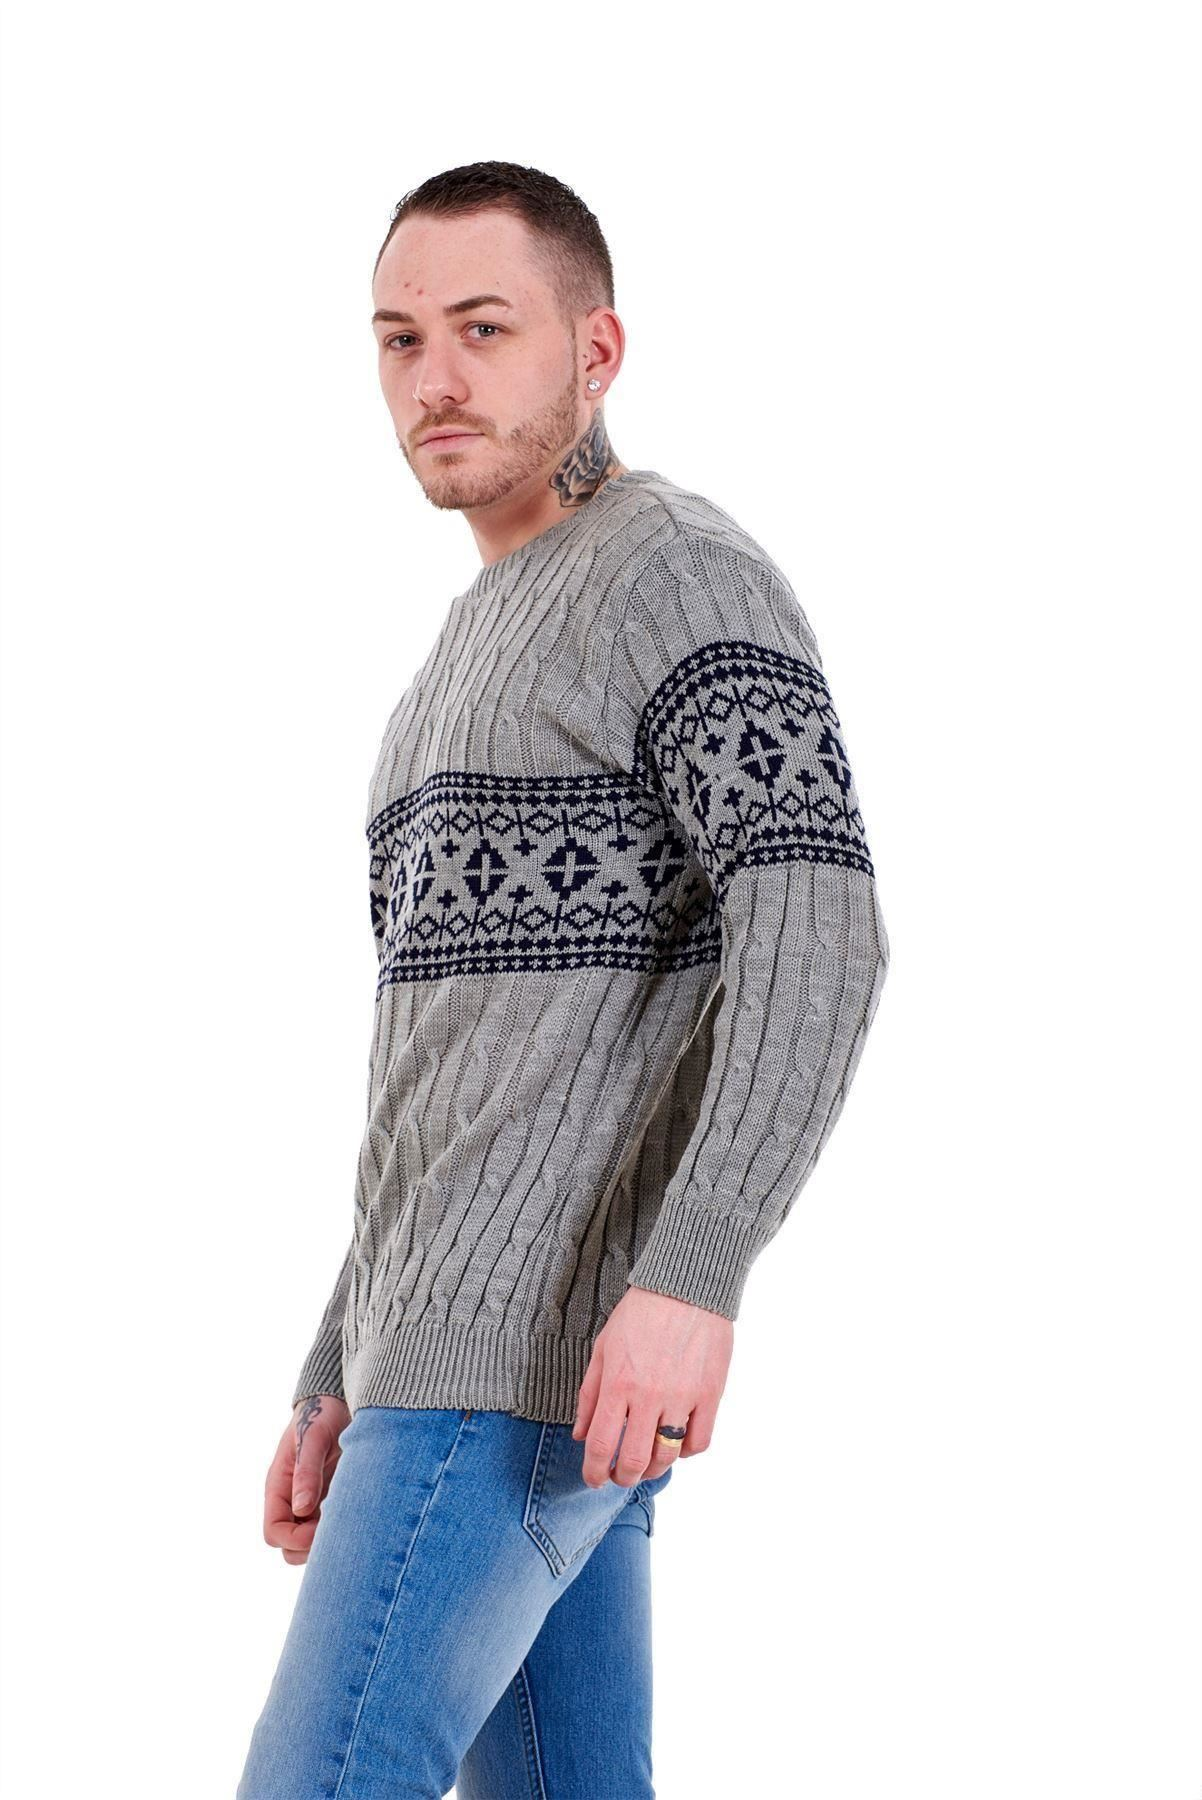 Mens-New-Cable-Knit-Jacquard-Long-Sleeve-Pullover-Jumper-Sweater-S-to-XL thumbnail 13